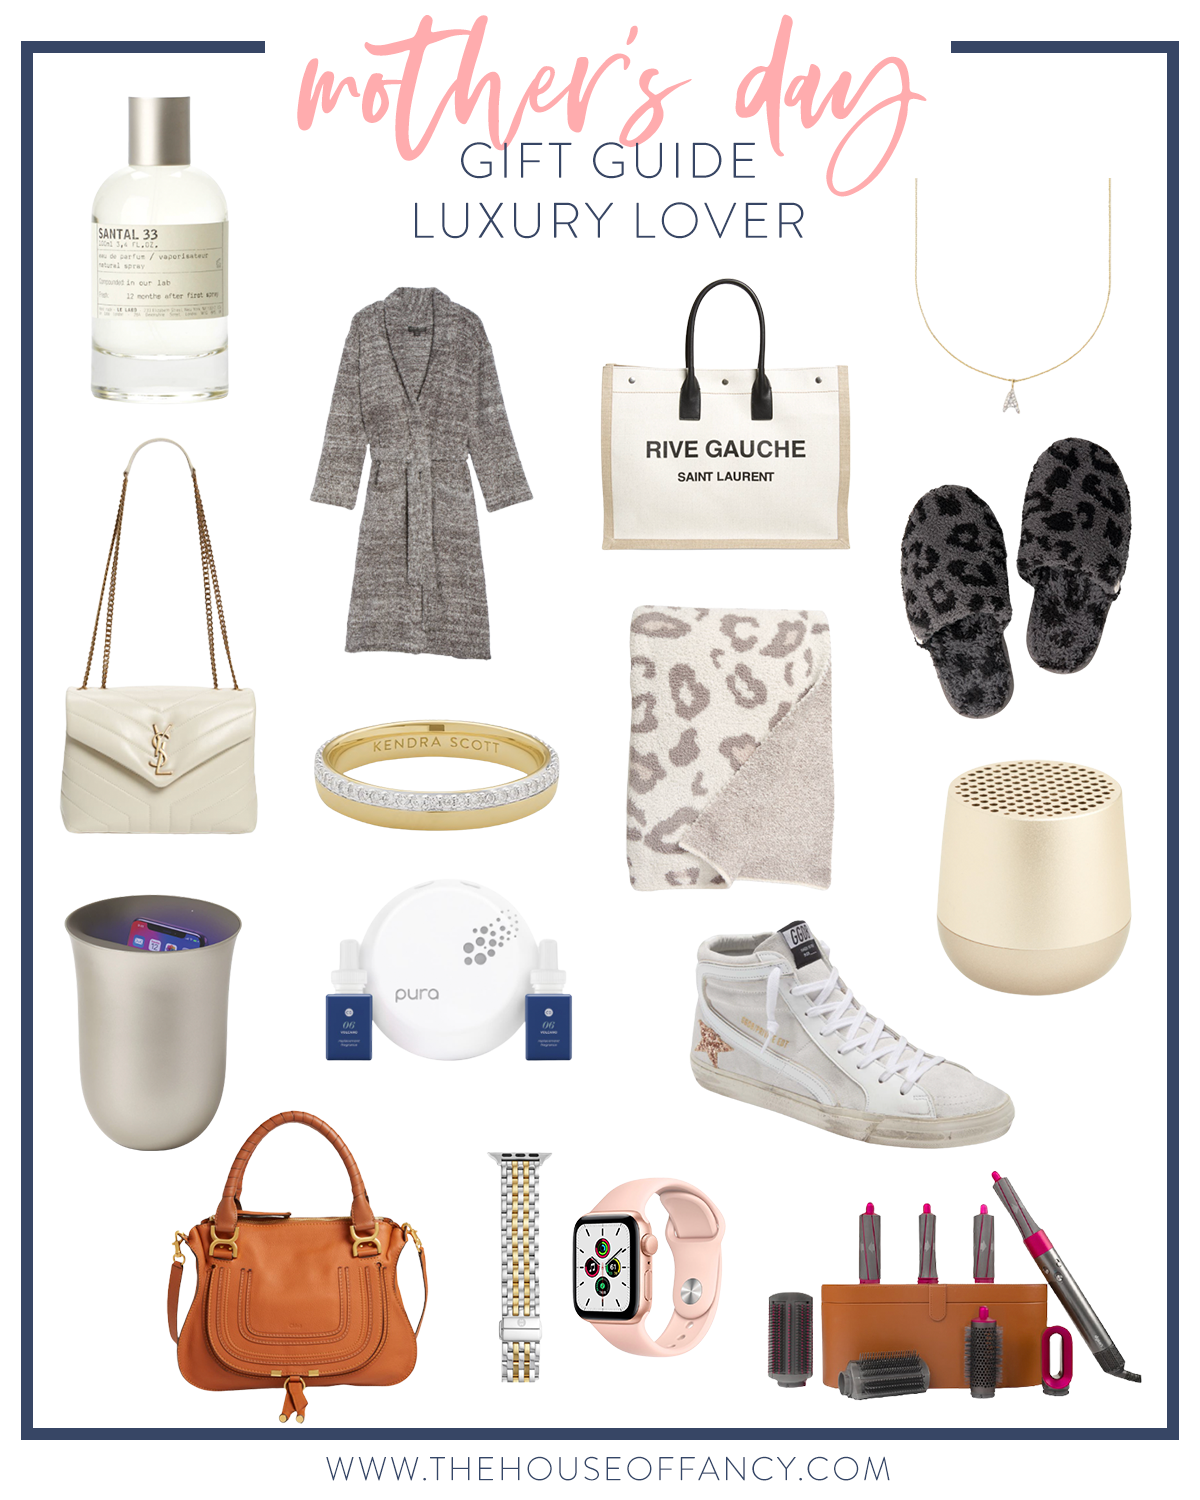 Mother's Day Gift Ideas by popular Houston life and style blog, The House of Fancy: collage image of leopard print blanket, UV sanitizer, brown saddle bag, Dyson curling wand, apple watch band, leopard print slippers, Rive Gauche bag, initial necklace, Golden Goose sneakers, and a bluetooth speaker.